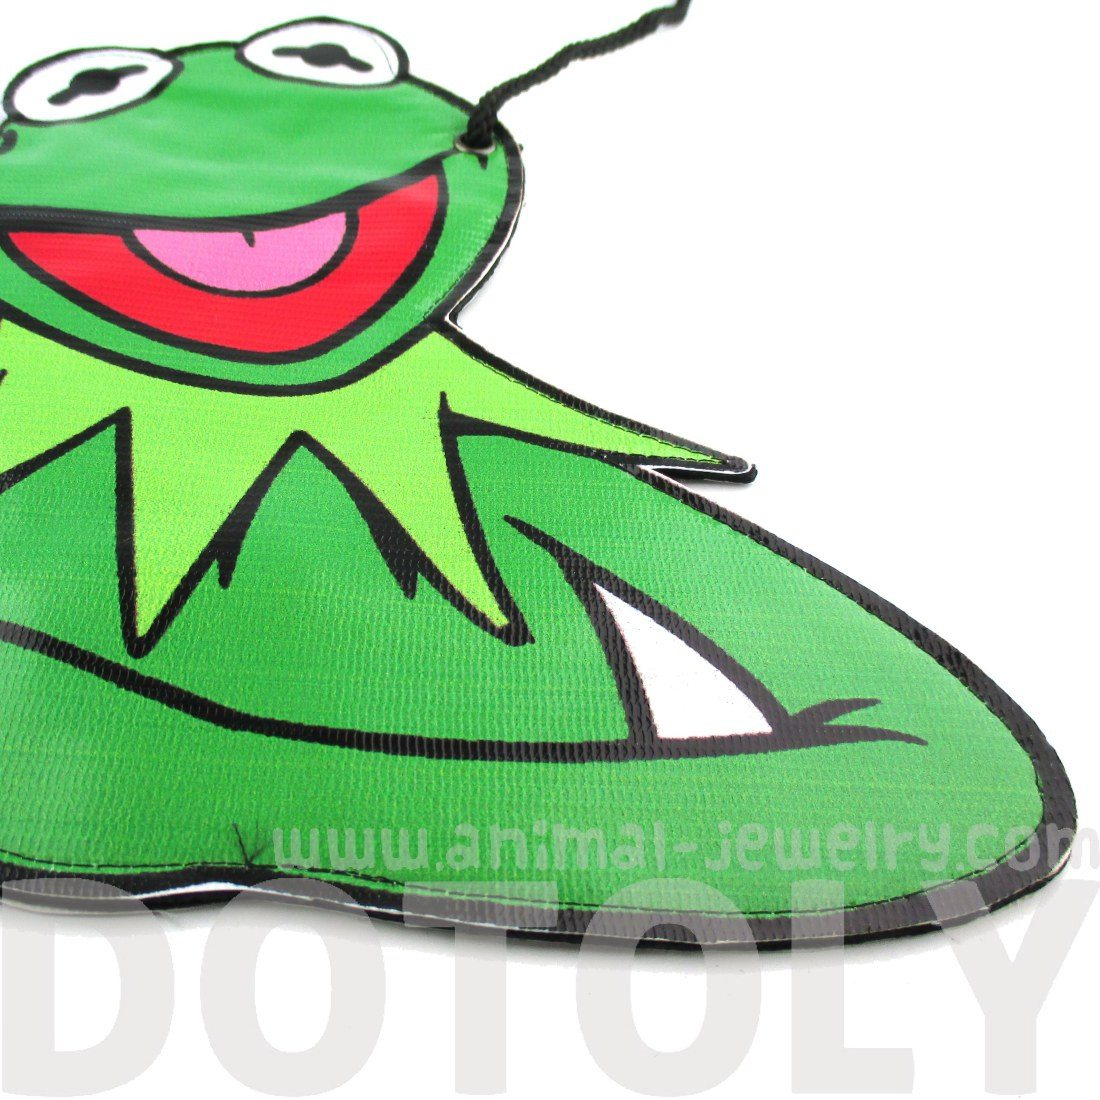 The Muppets Show Kermit the Frog Shaped Vinyl xBody Bag